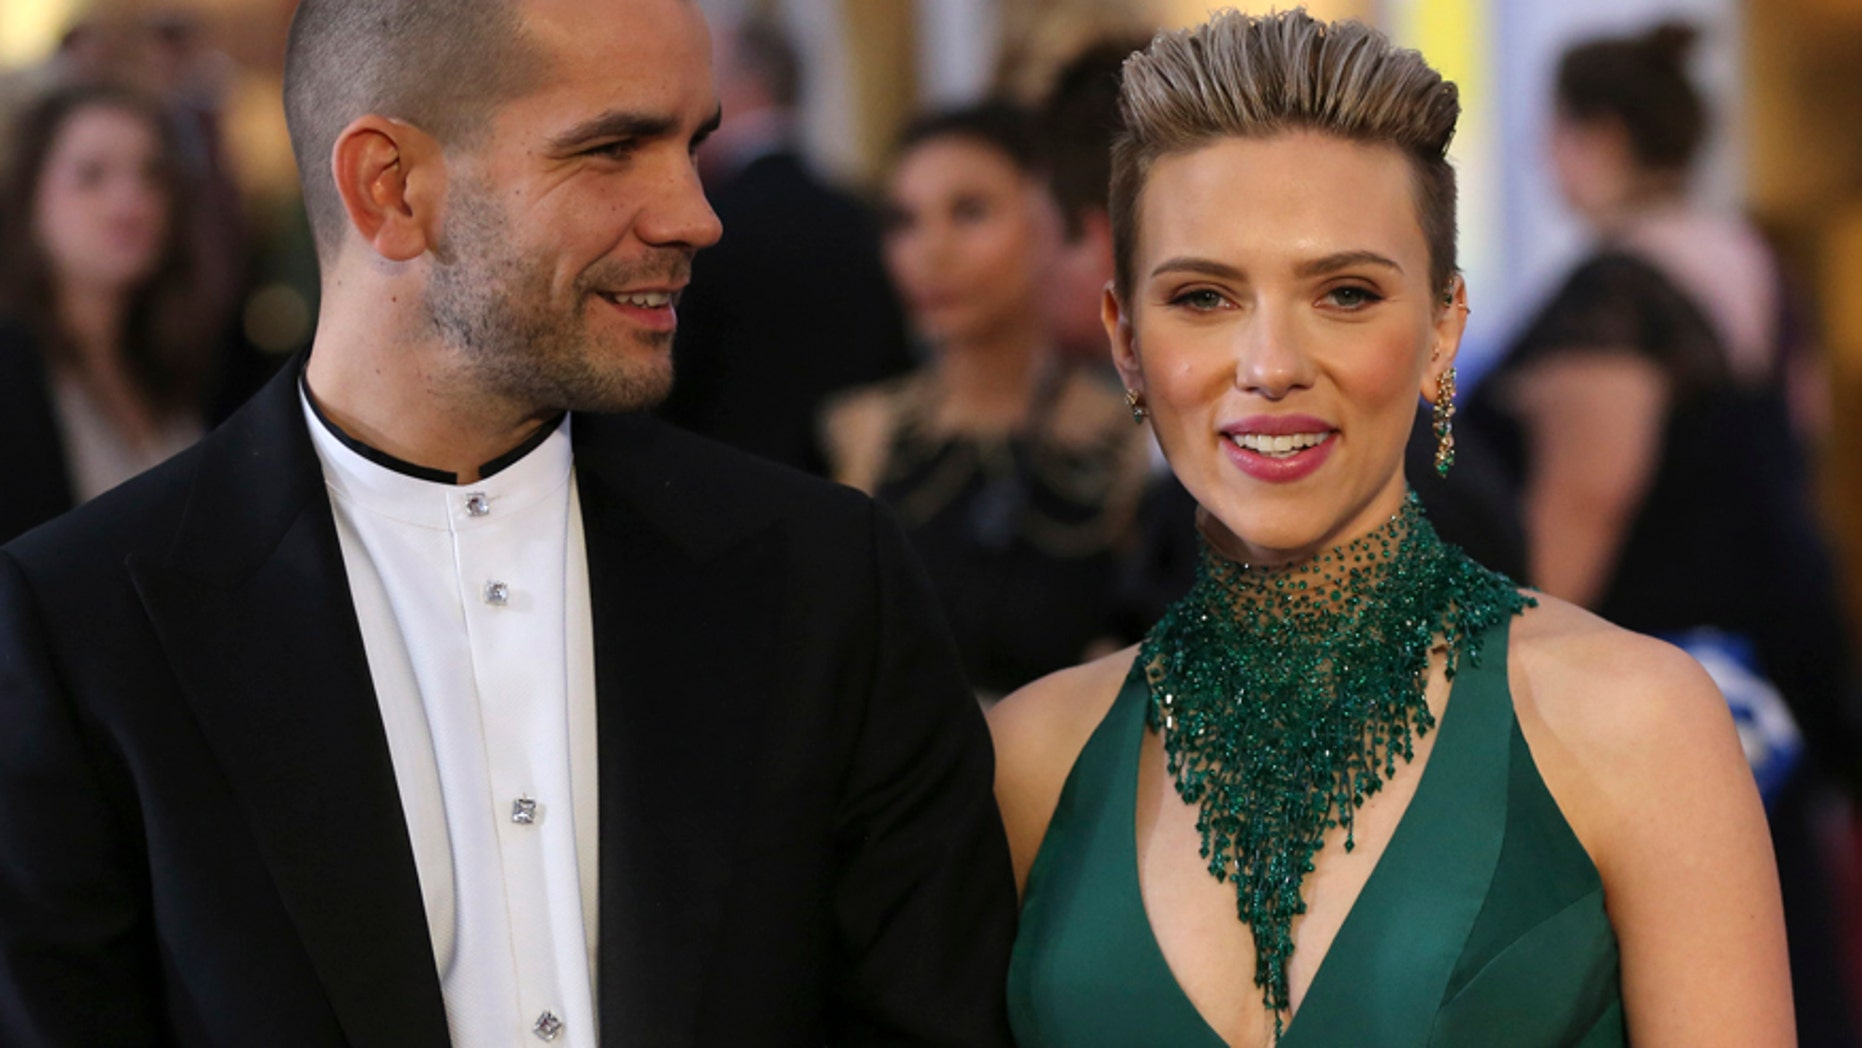 Actress Scarlett Johansson wears a Versace dress as she and then-husband Romain Dauriac arrive at the 87th Academy Awards in Hollywood, California February 22, 2015.